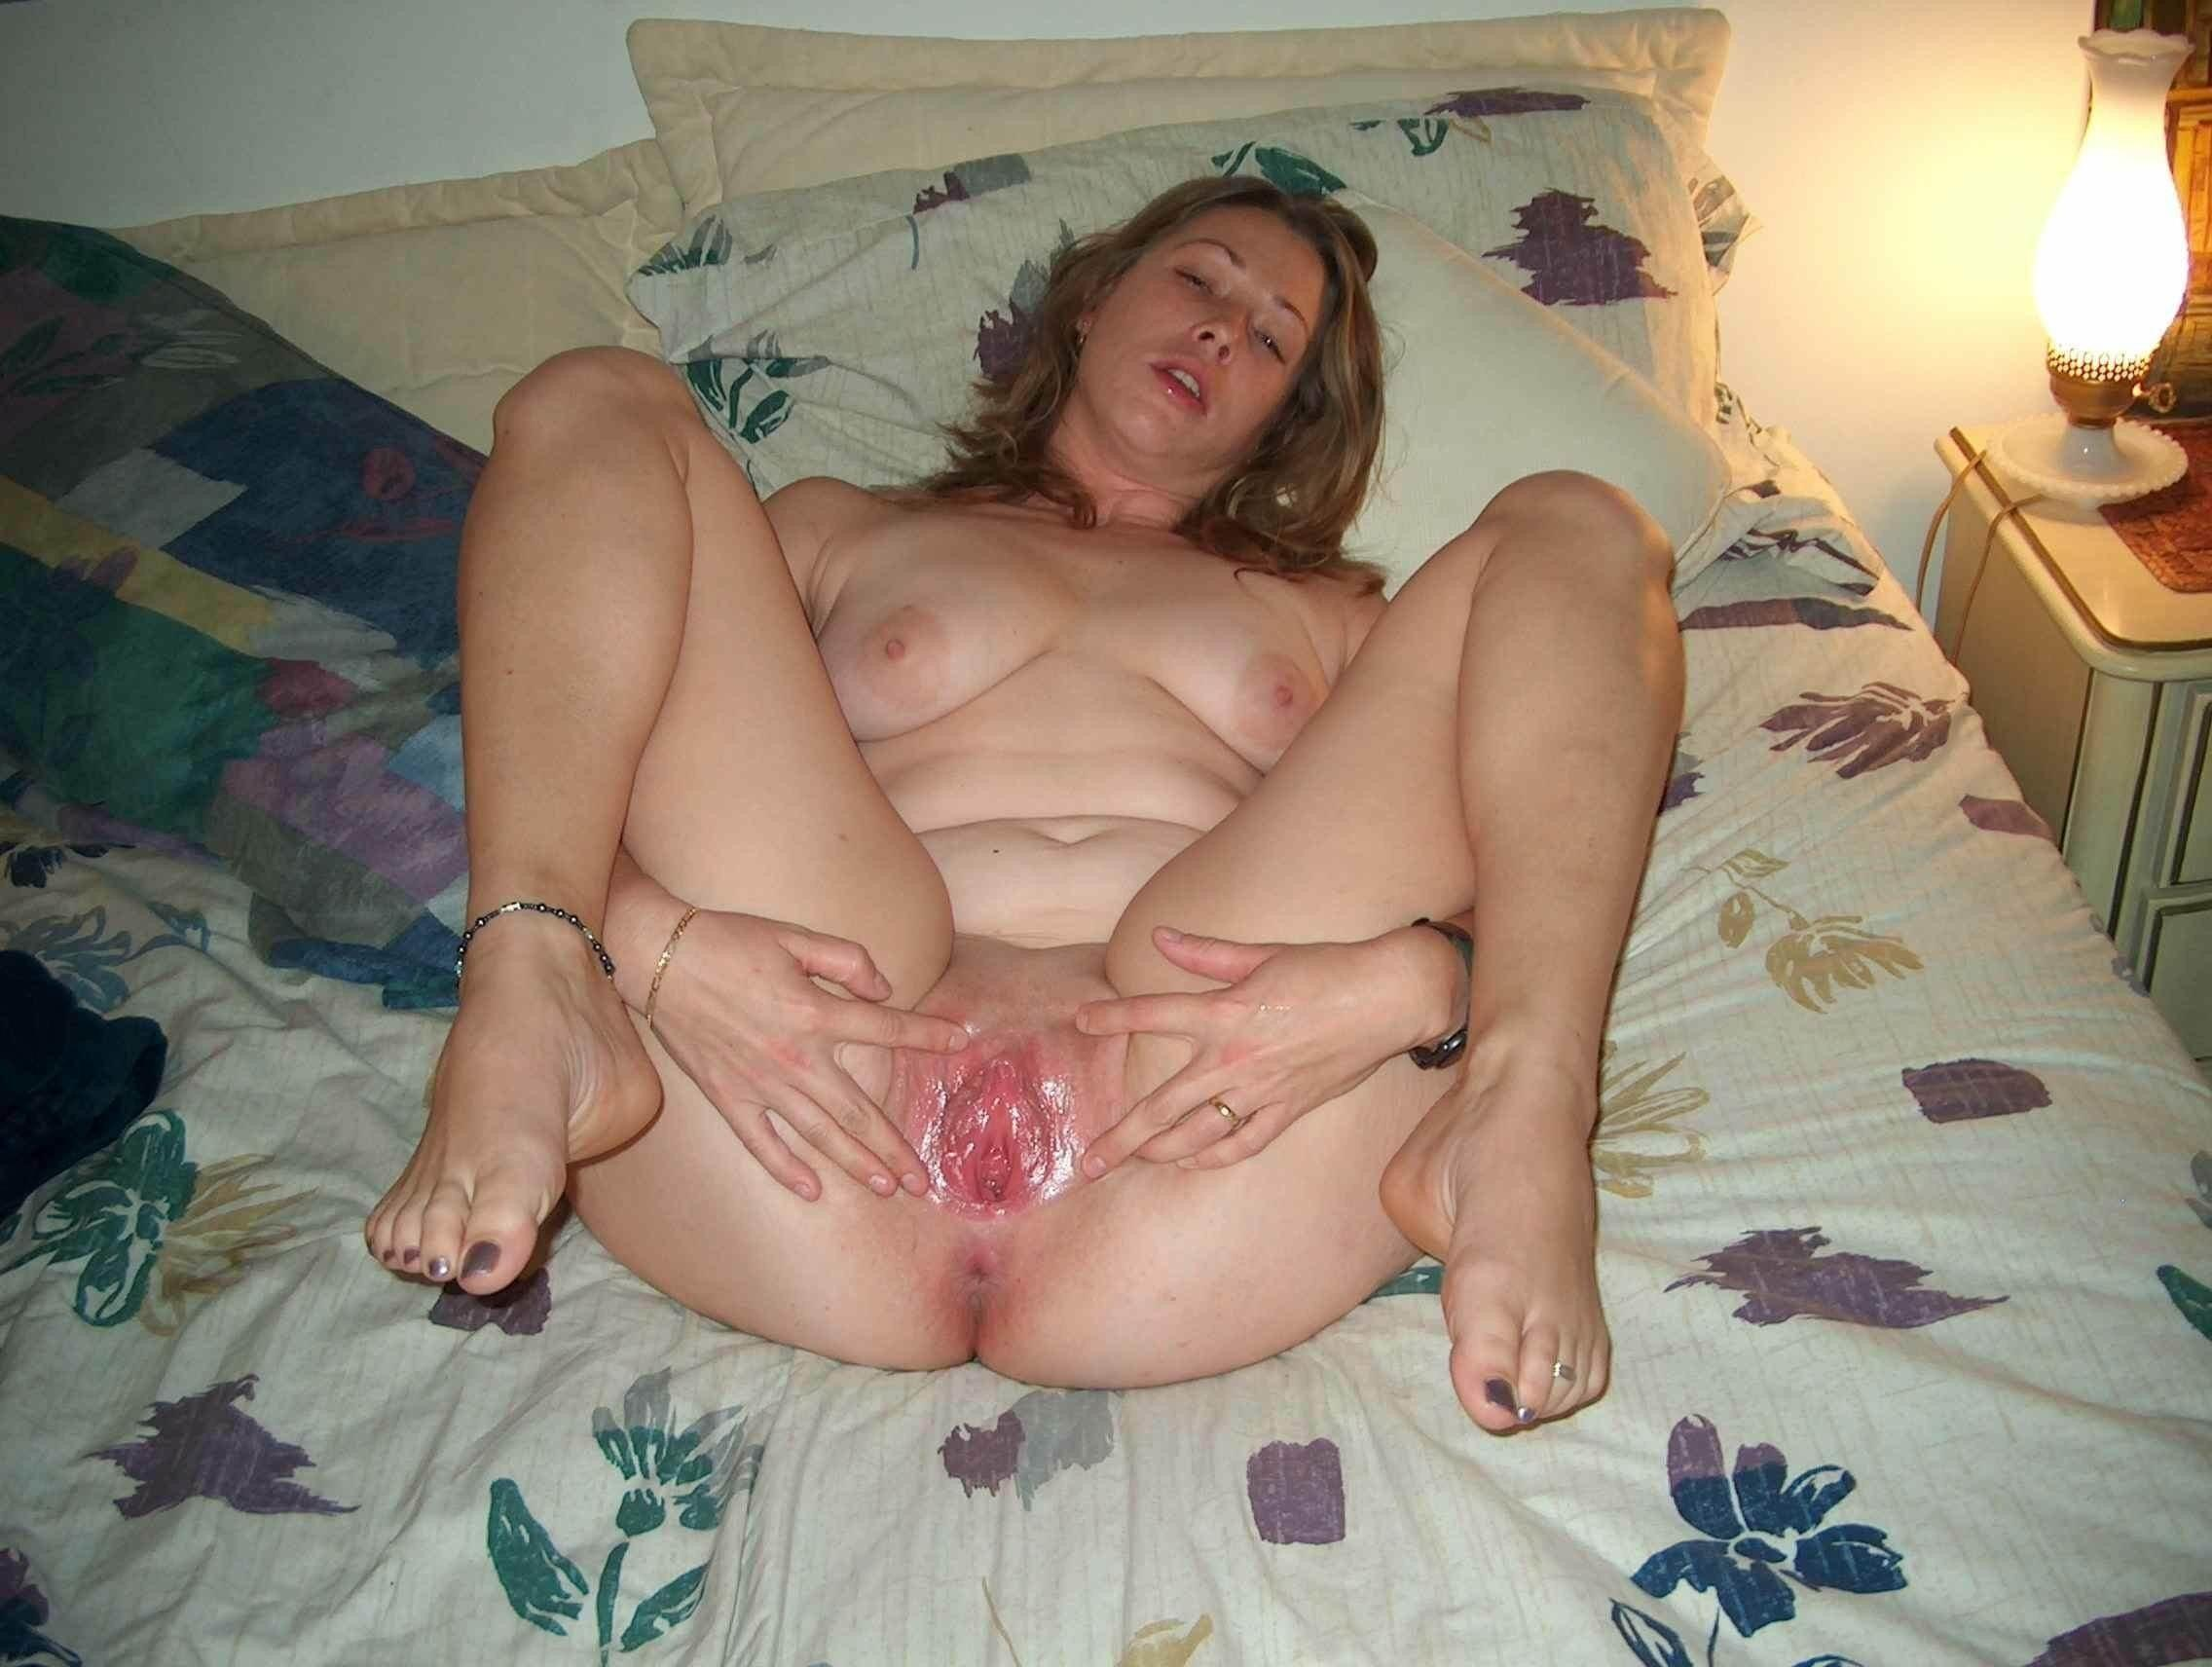 Big white woman pregnant nude